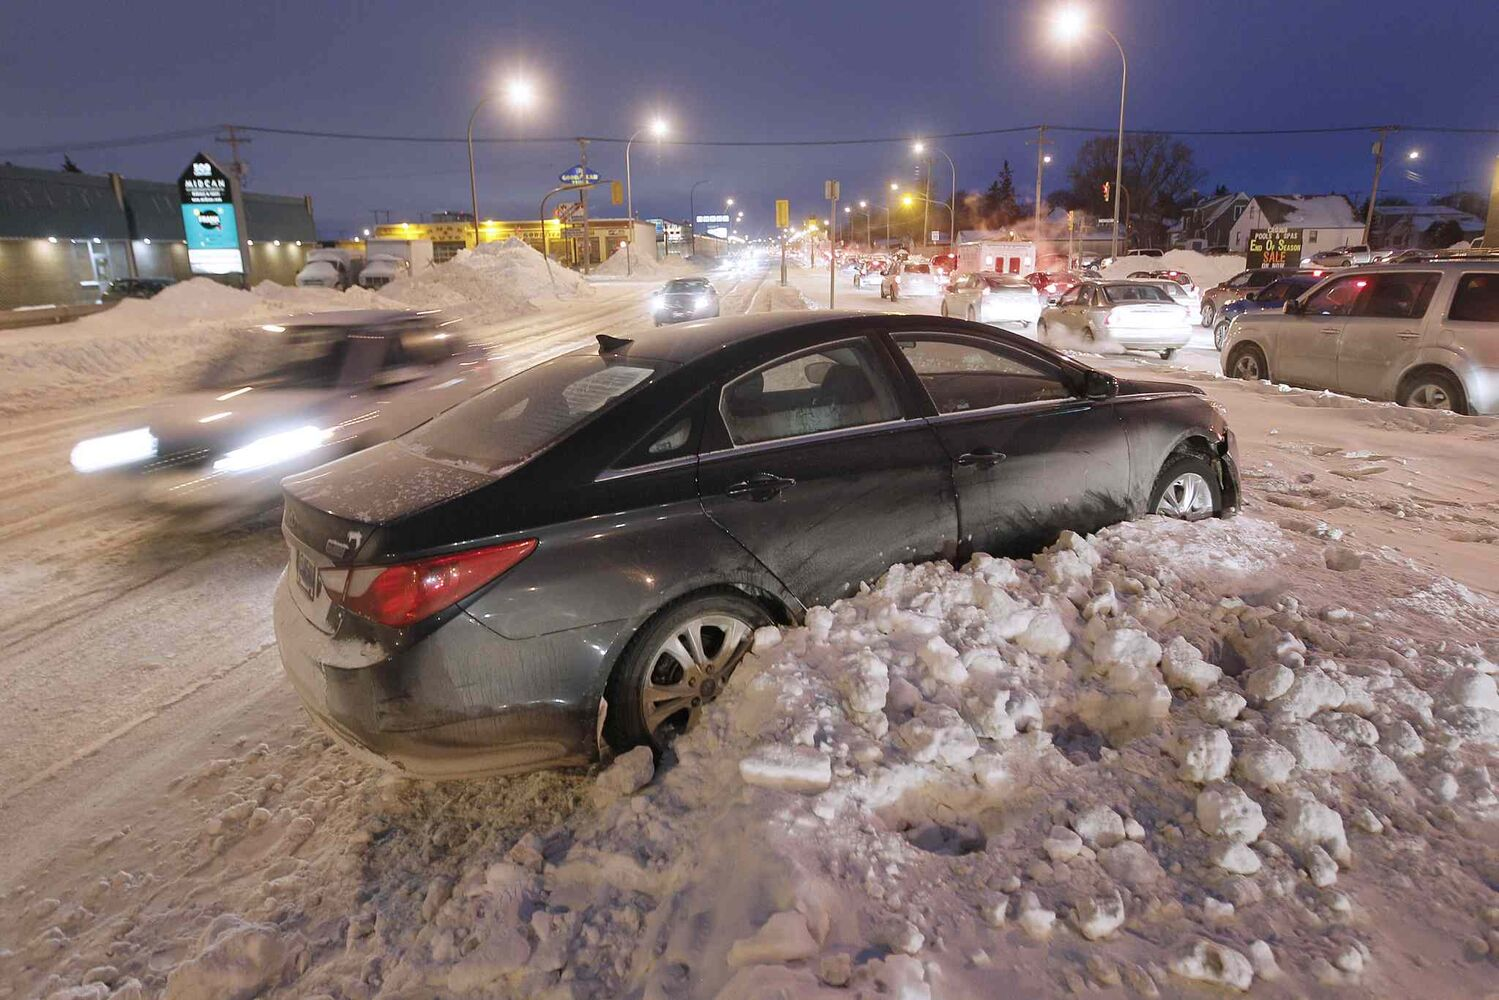 A car ended up on Century Street boulevard after sliding on the icy, rutted road on Monday. Crews continue to plow streets in extreme cold weather in southern Manitoba. ( John Woods / Winnipeg Free Press)